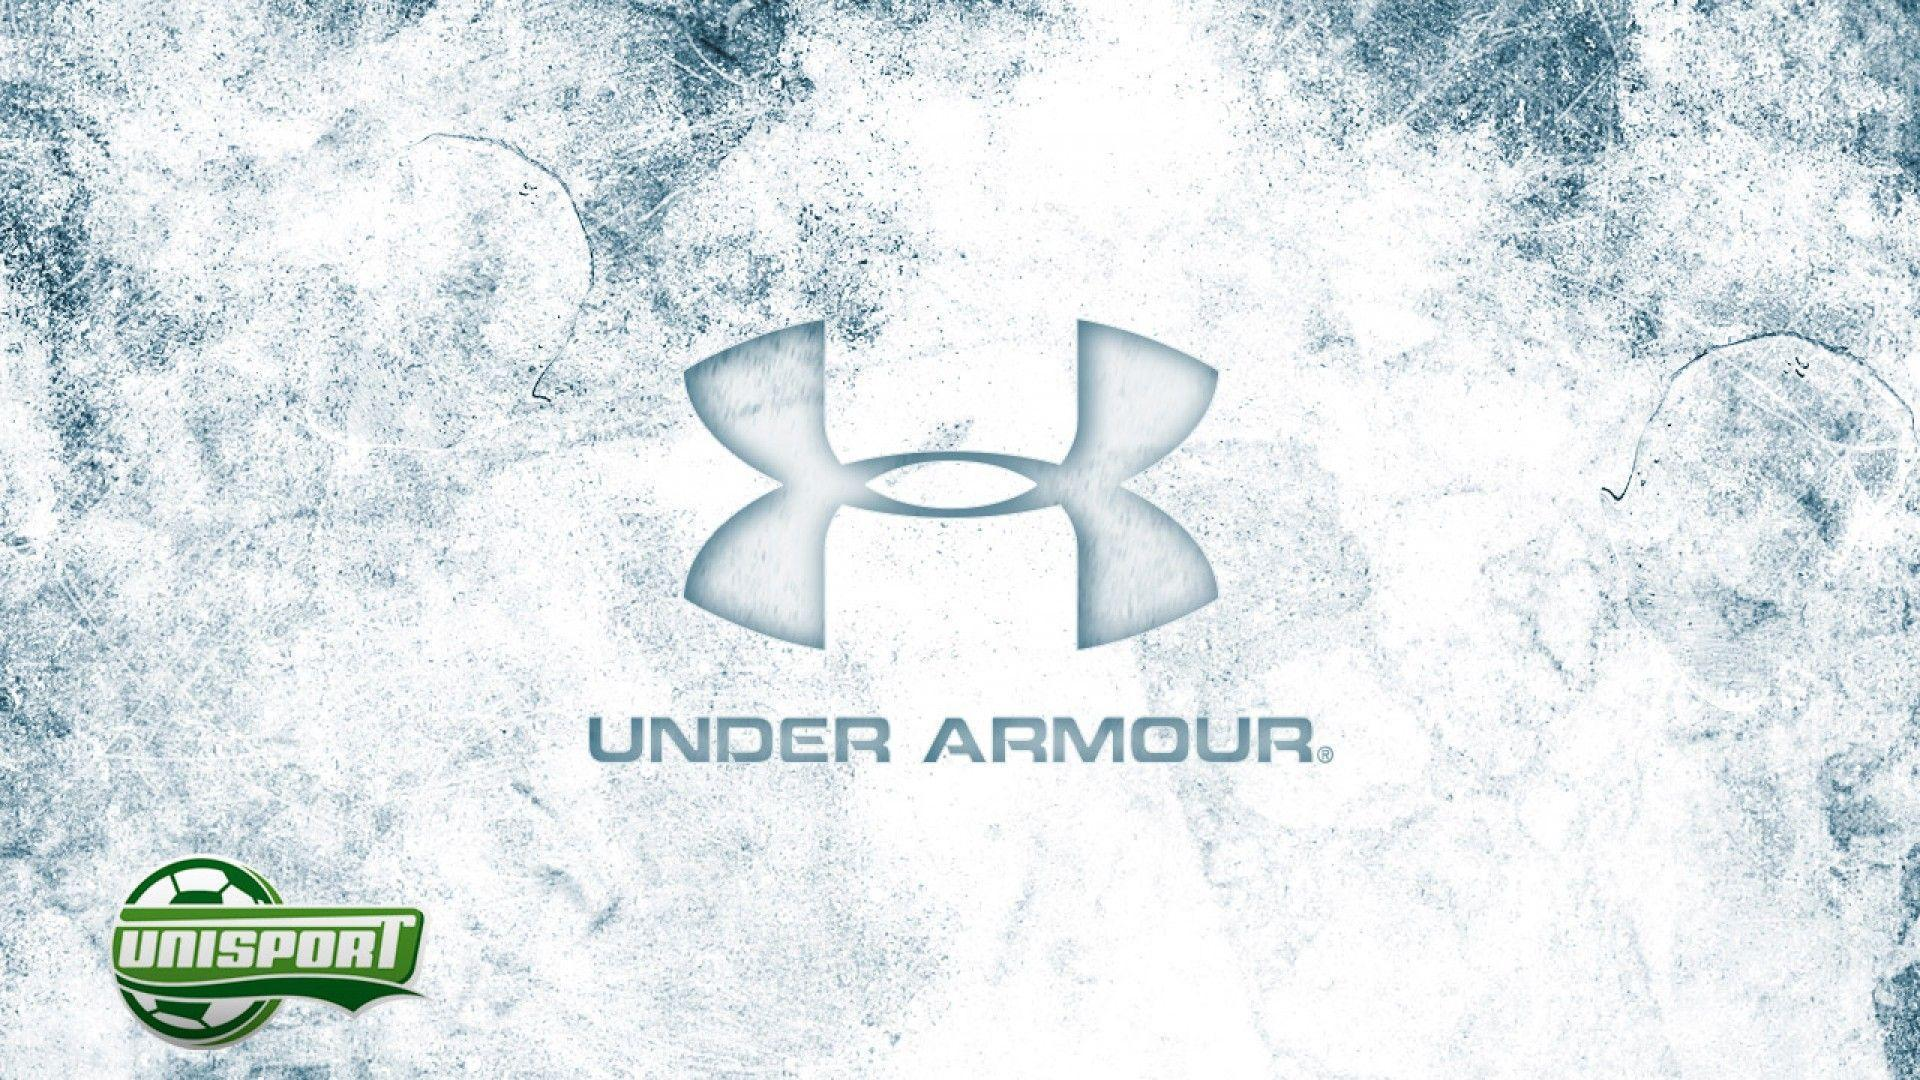 under armour wallpapers for facebook - photo #8